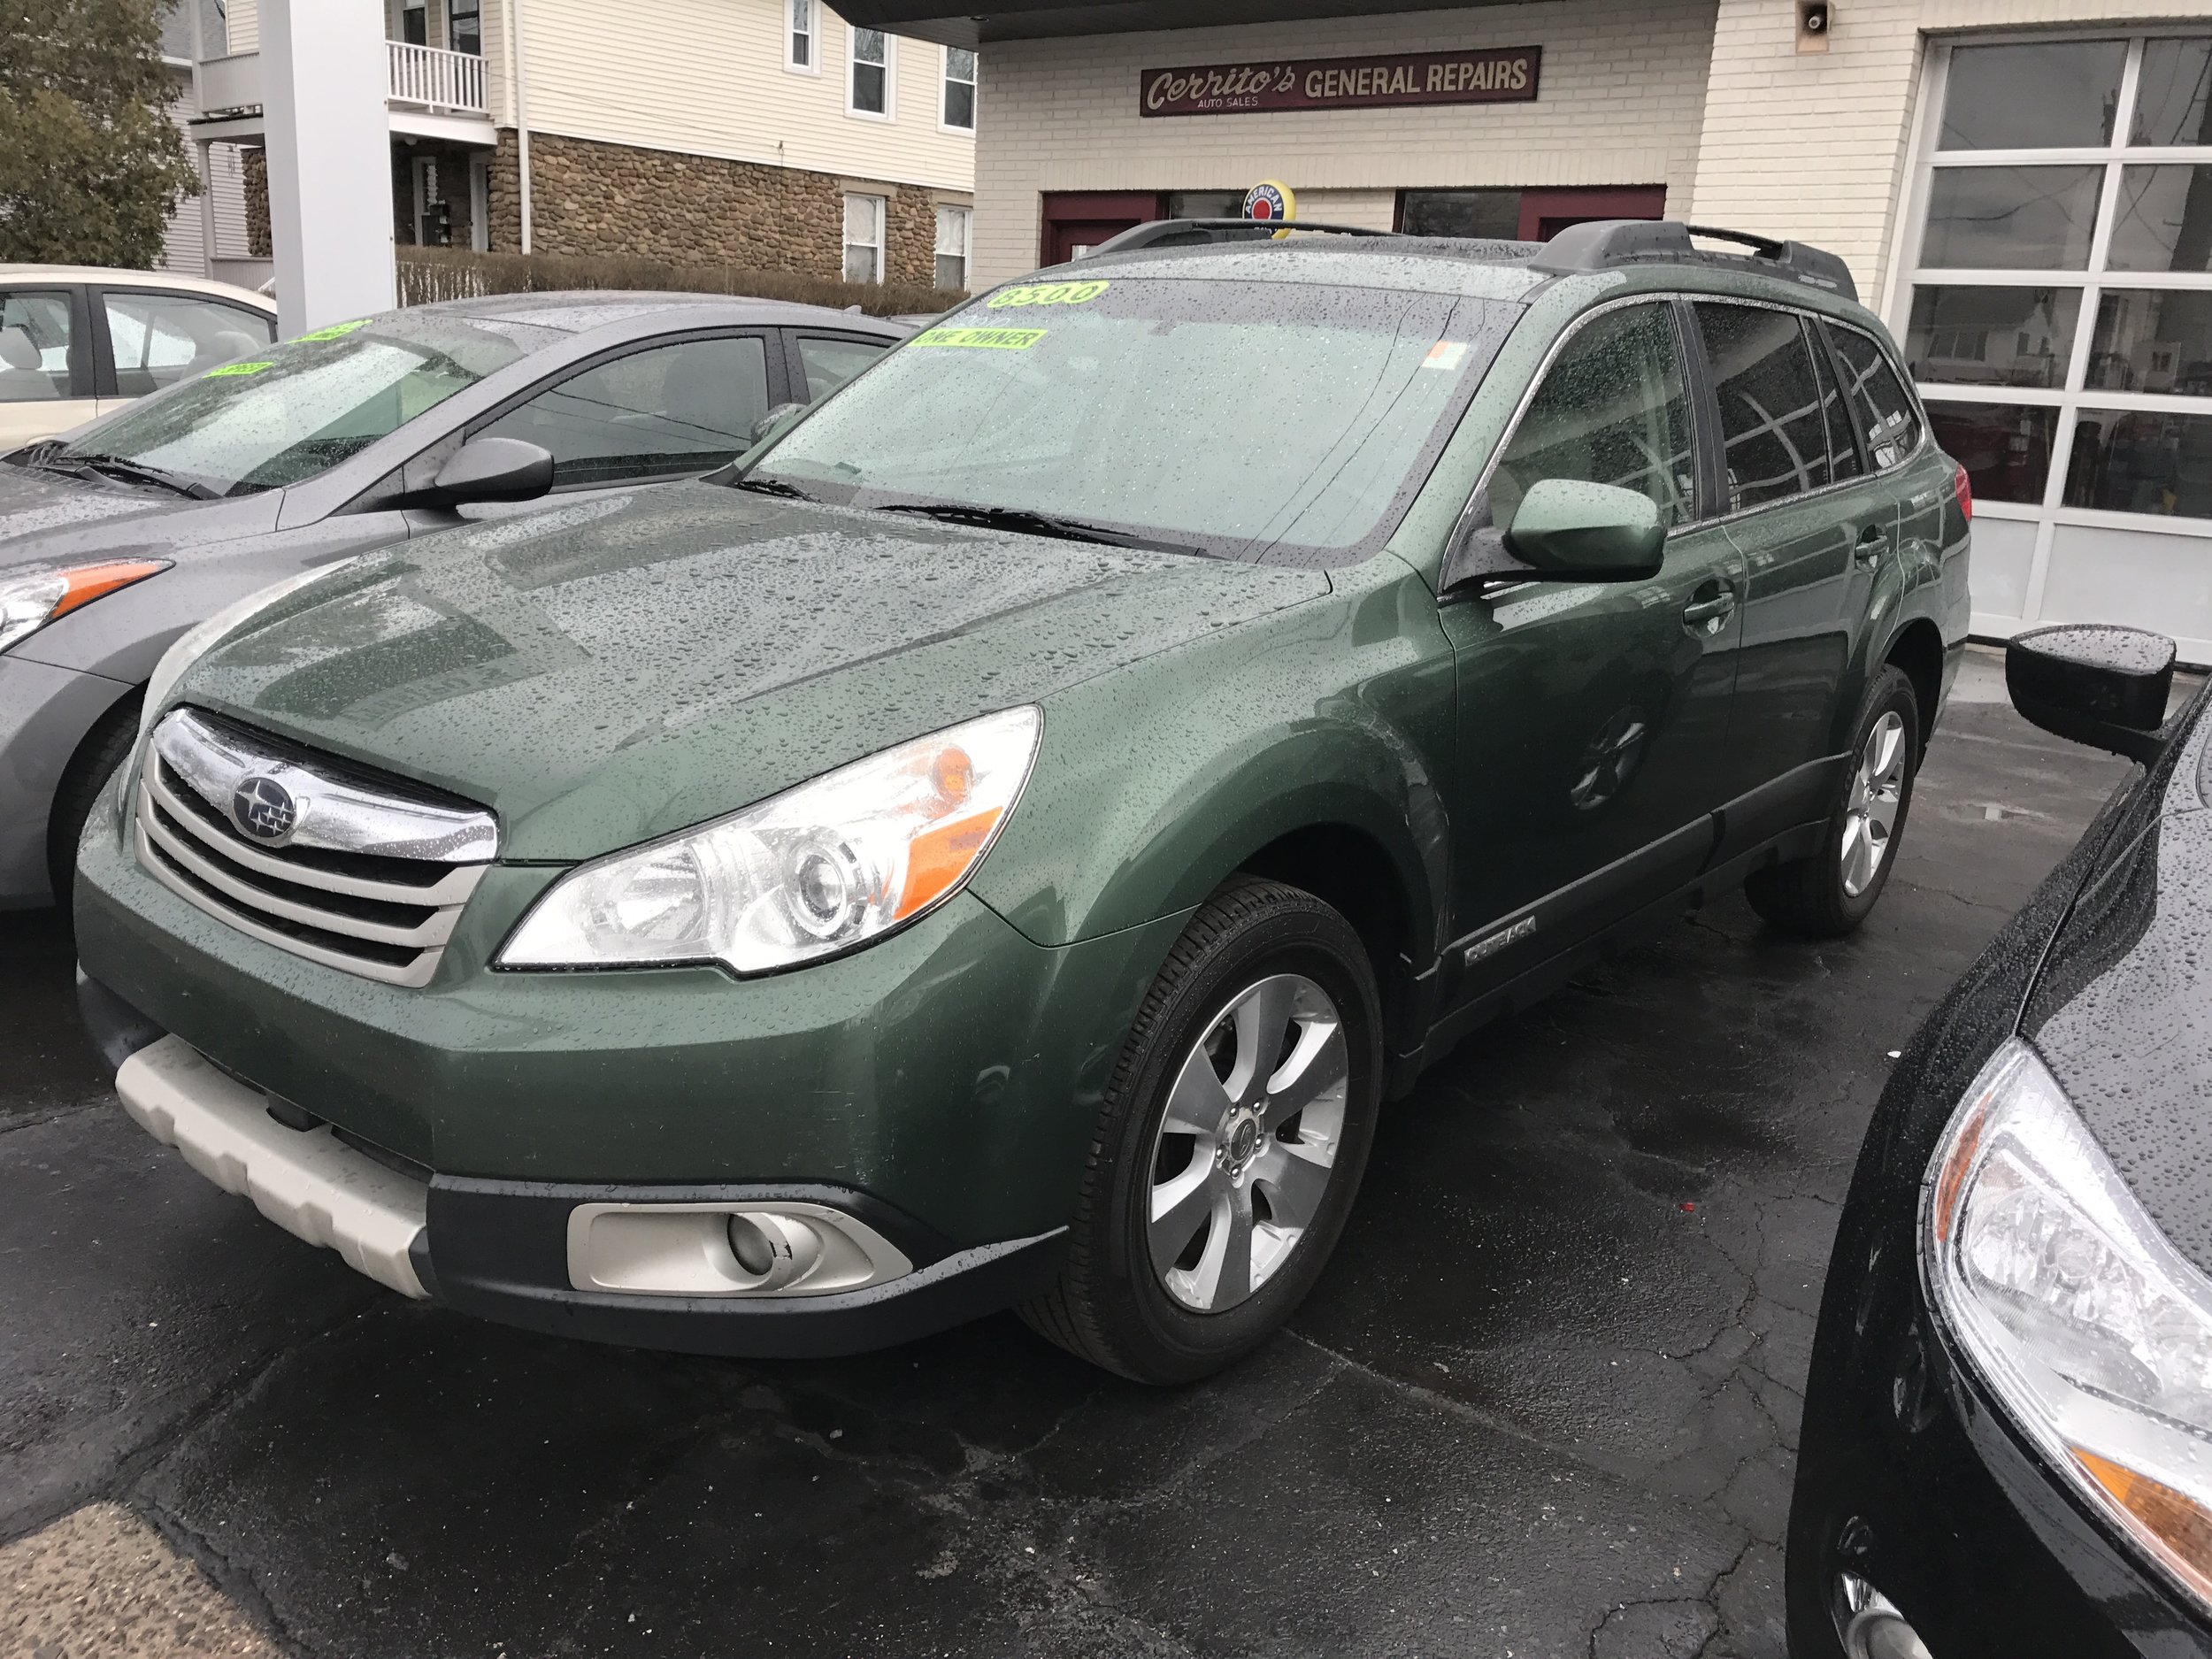 Cct2010 Subaru Outback $8,500  214kAutomatic, 4cyl ac ps pw Warranty leathe, sunroof Great Condition Green Stock # 1732Call or Stop by Cerritos Auto Sales at 203-265-6142 280 North Colony rd. (Rte 5 ) Wallingford CT.